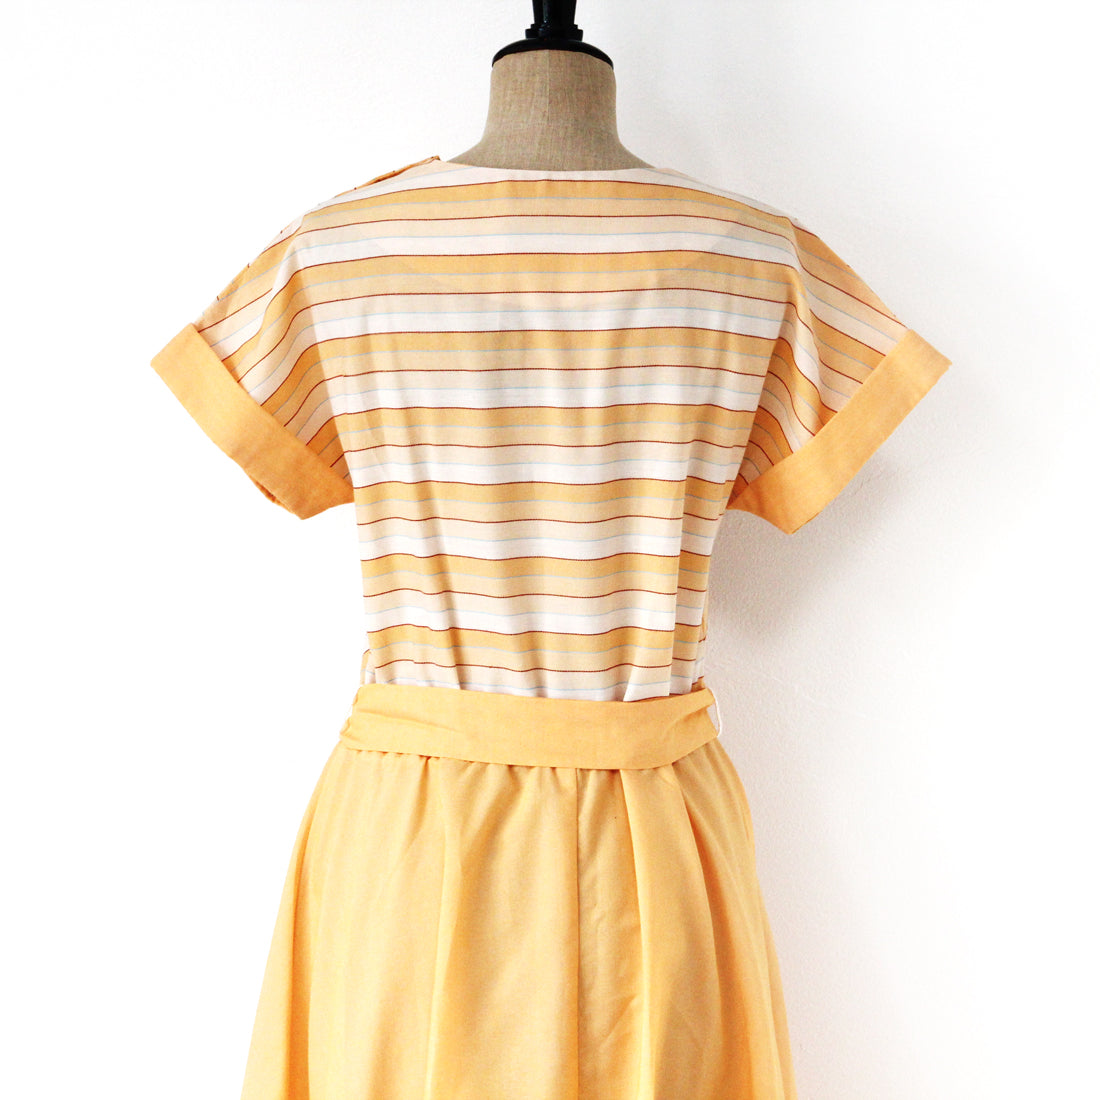 1970S CAP SLEEVE DRESS / ORANGE (D350)